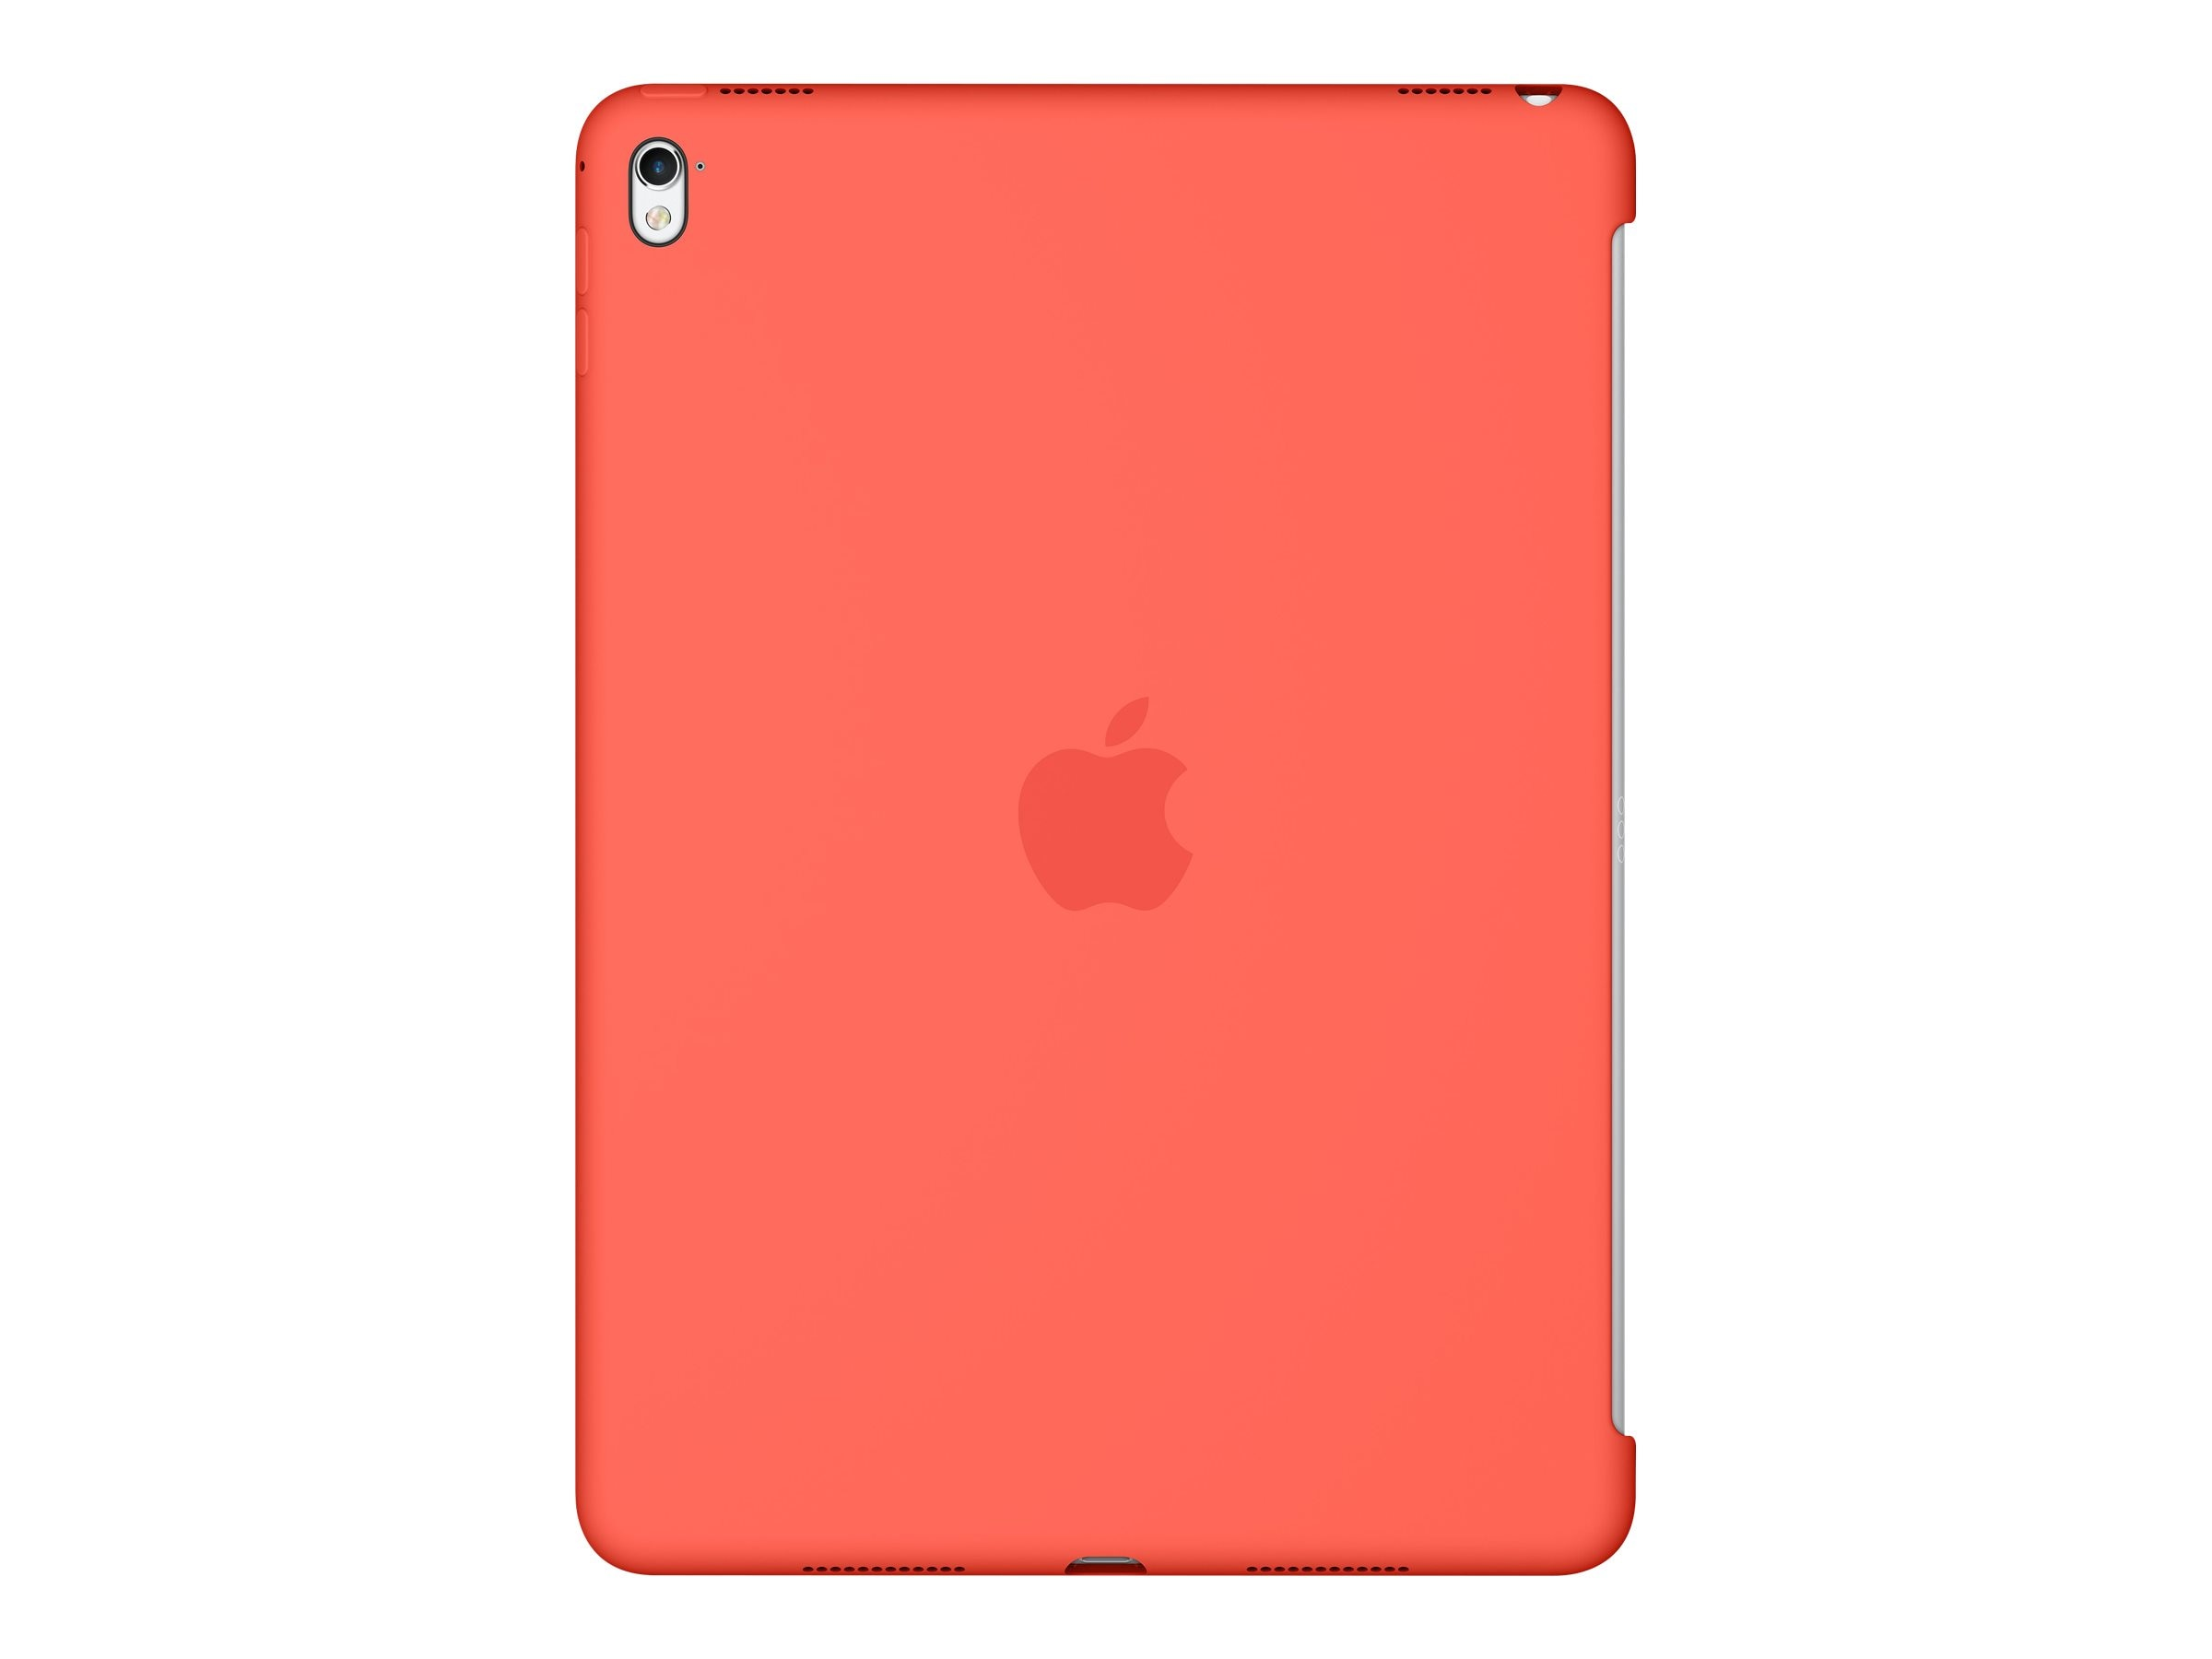 Apple Silicone Case for iPad Pro 9.7, Apricot, MM262AM/A